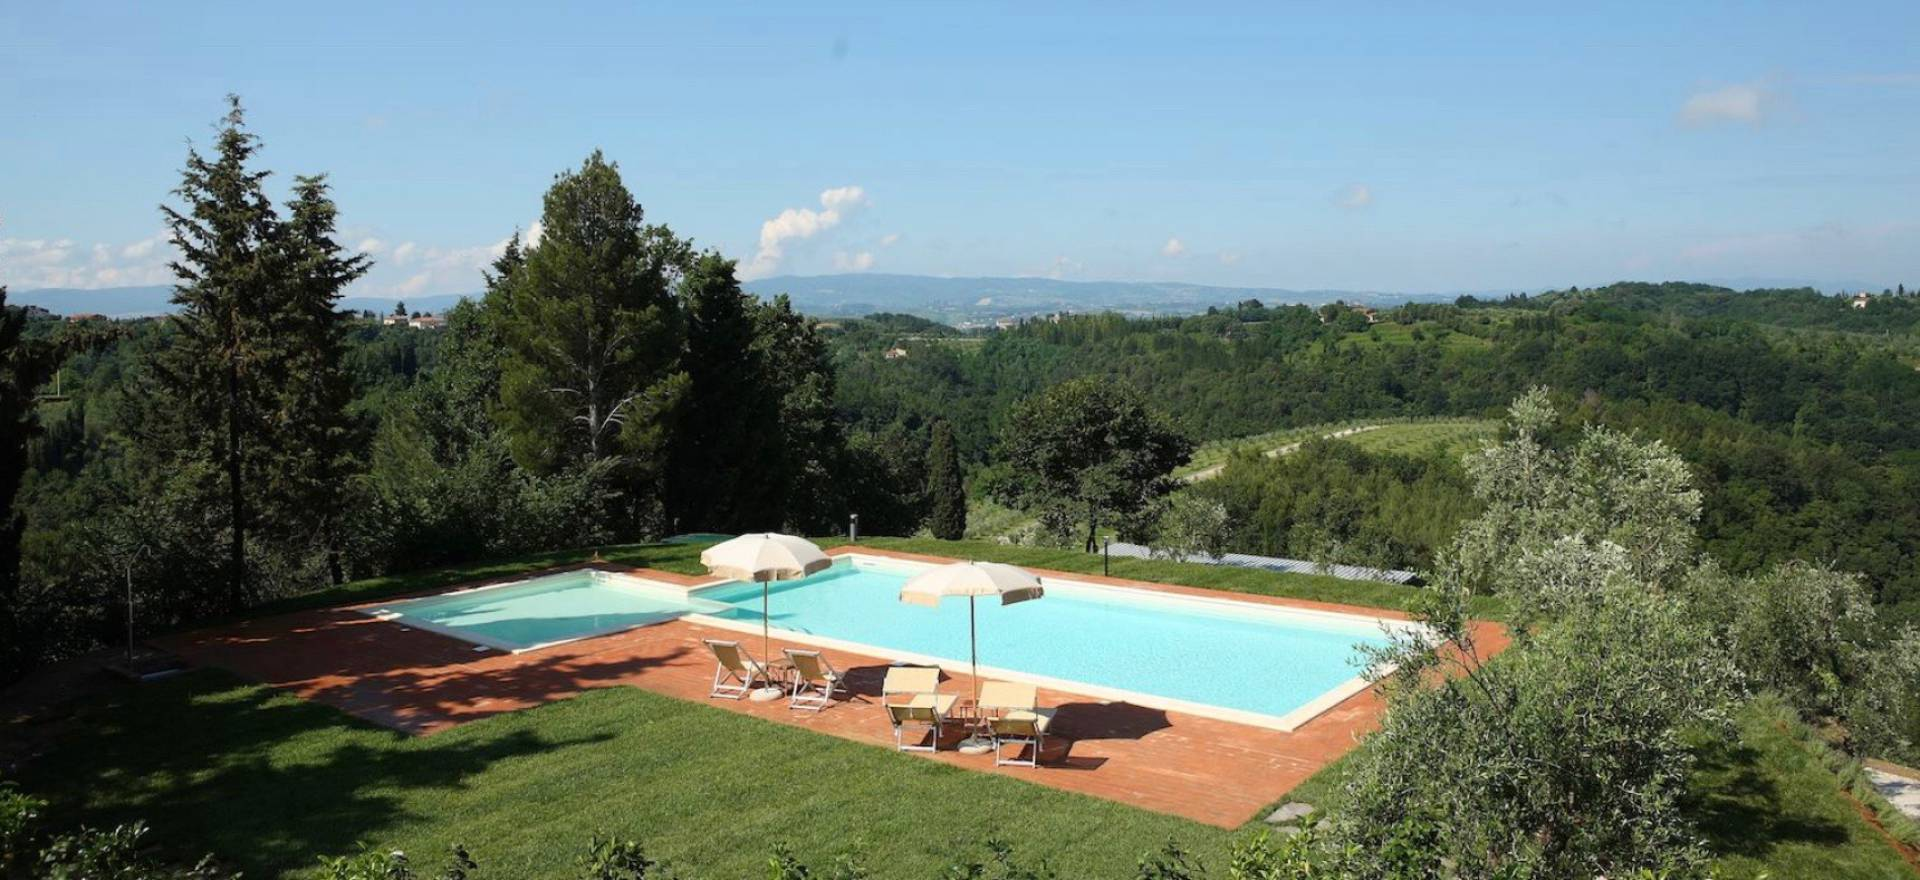 Agriturismo Toscana Agriturismo adatto alle famiglie vicino Lucca, Toscana